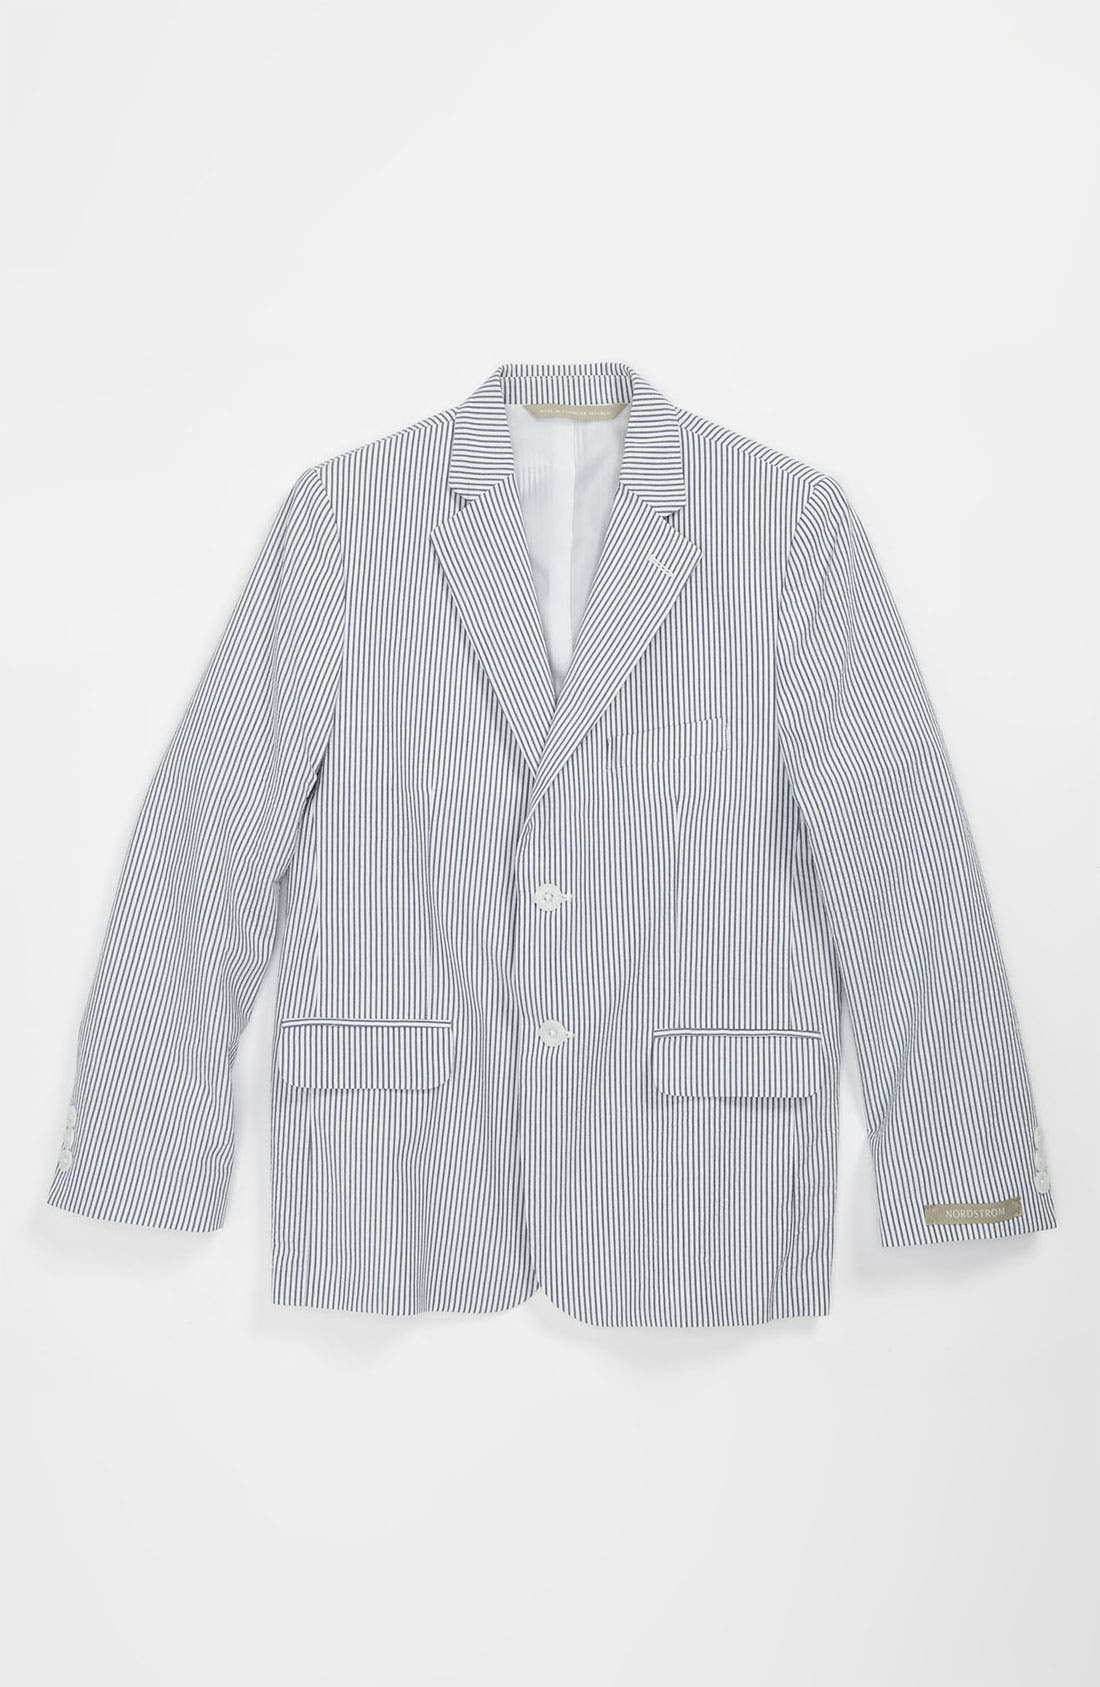 Alternate Image 1 Selected - Nordstrom 'Christopher' Seersucker Jacket (Little Boys & Big Boys)